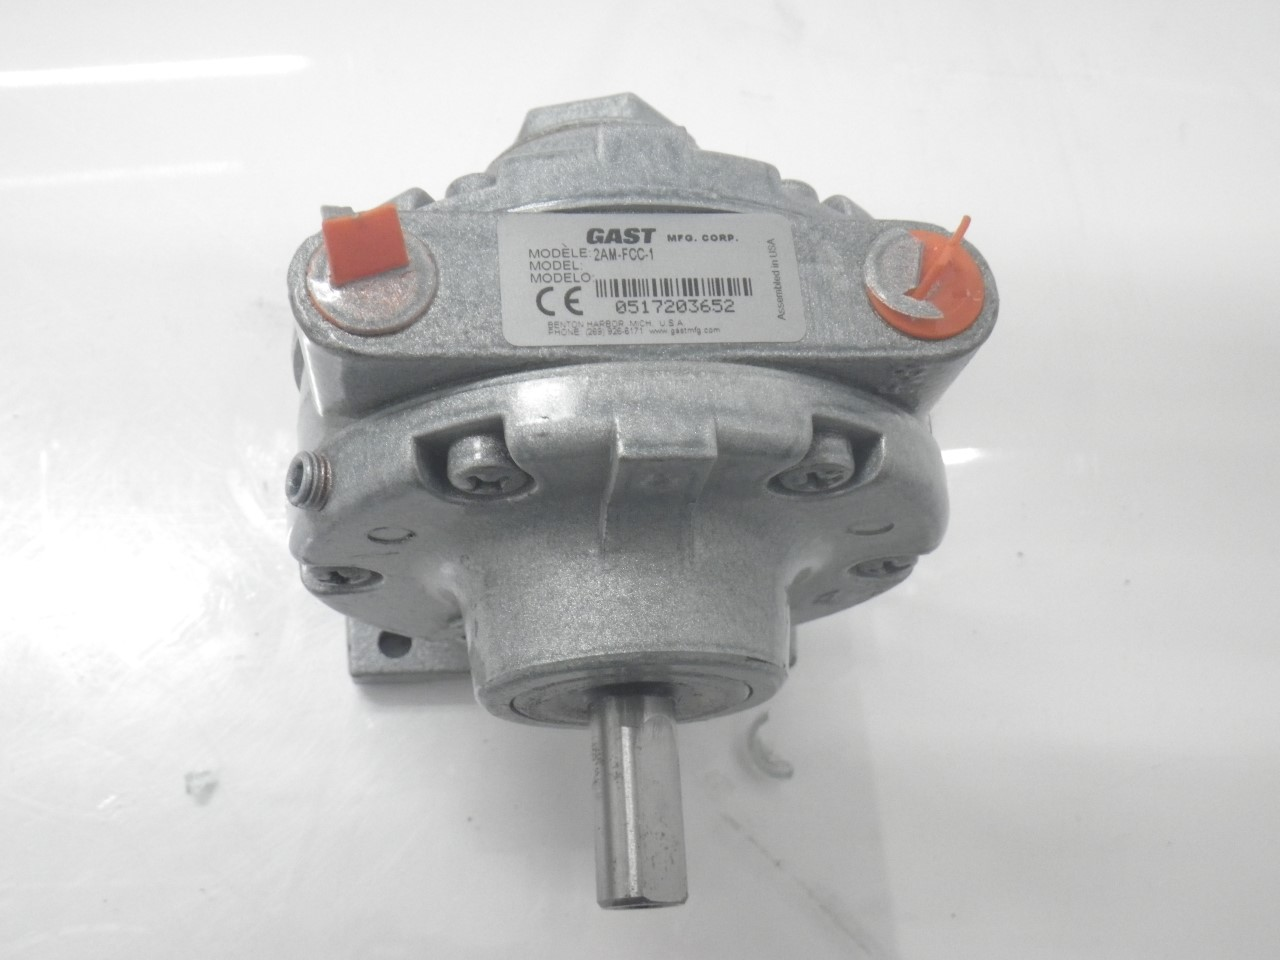 IMGP11832AM-FCC-1 Gast Air Motor (Used Tested) (Very Good Condition) (8)